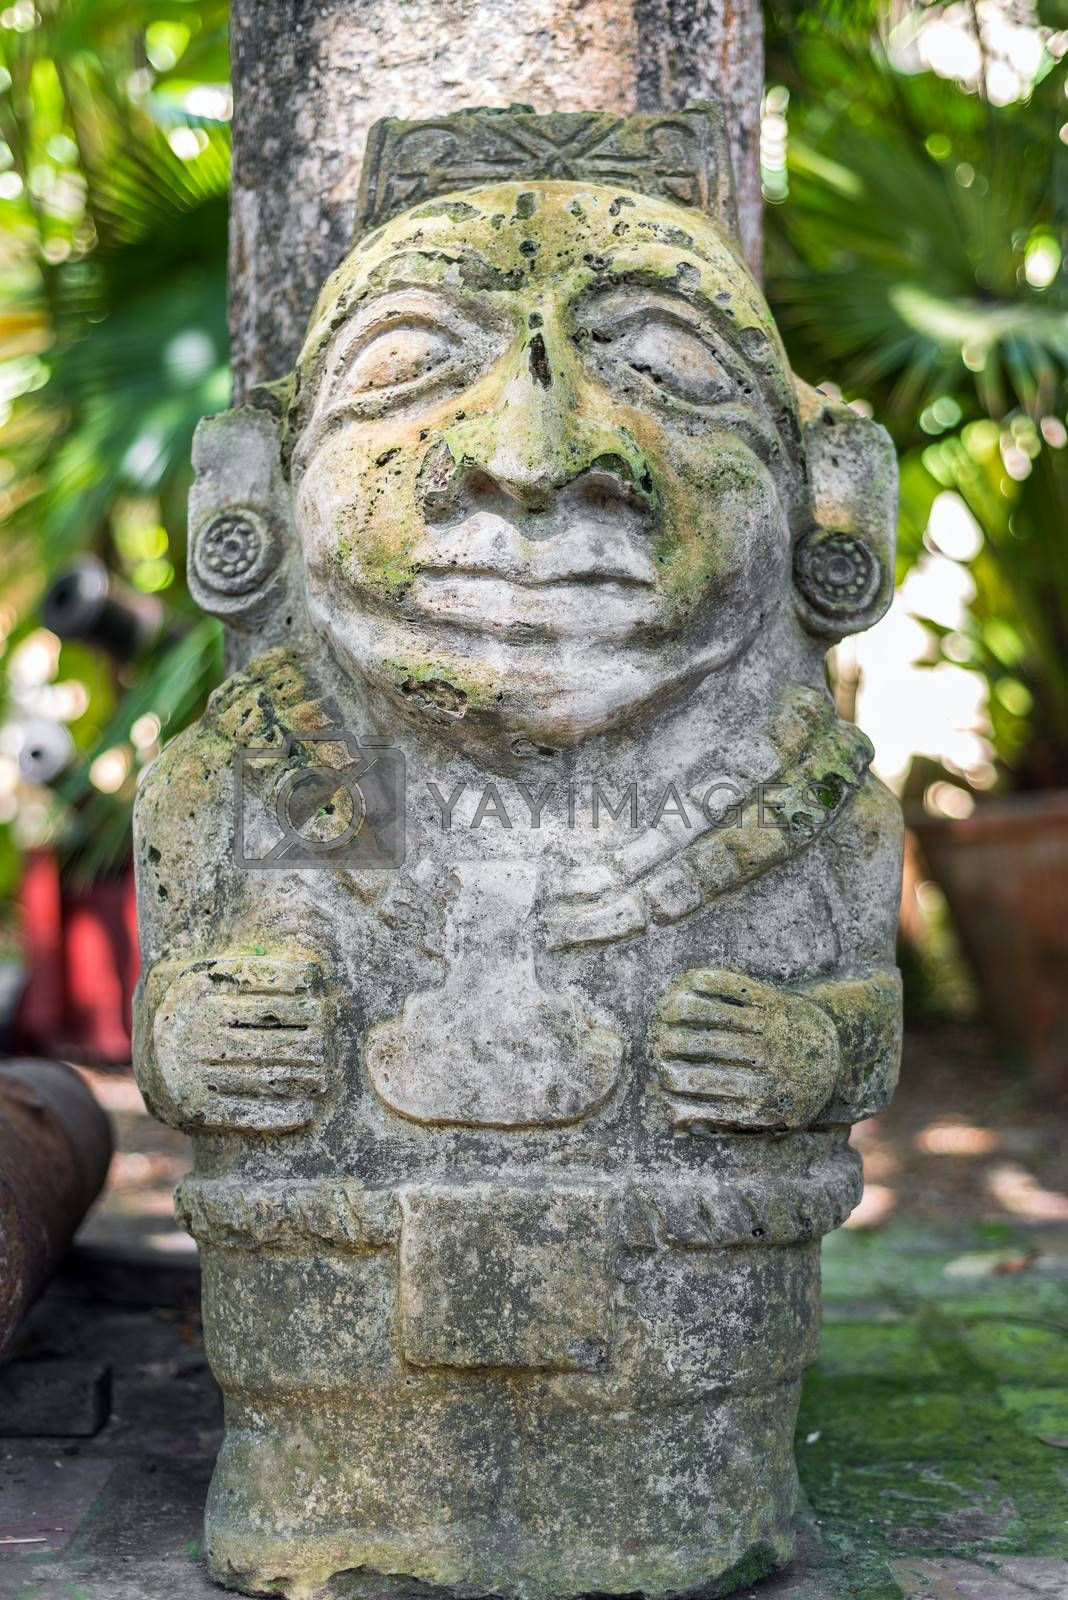 Ancient pre-columbian statue in Cartagena, Colombia